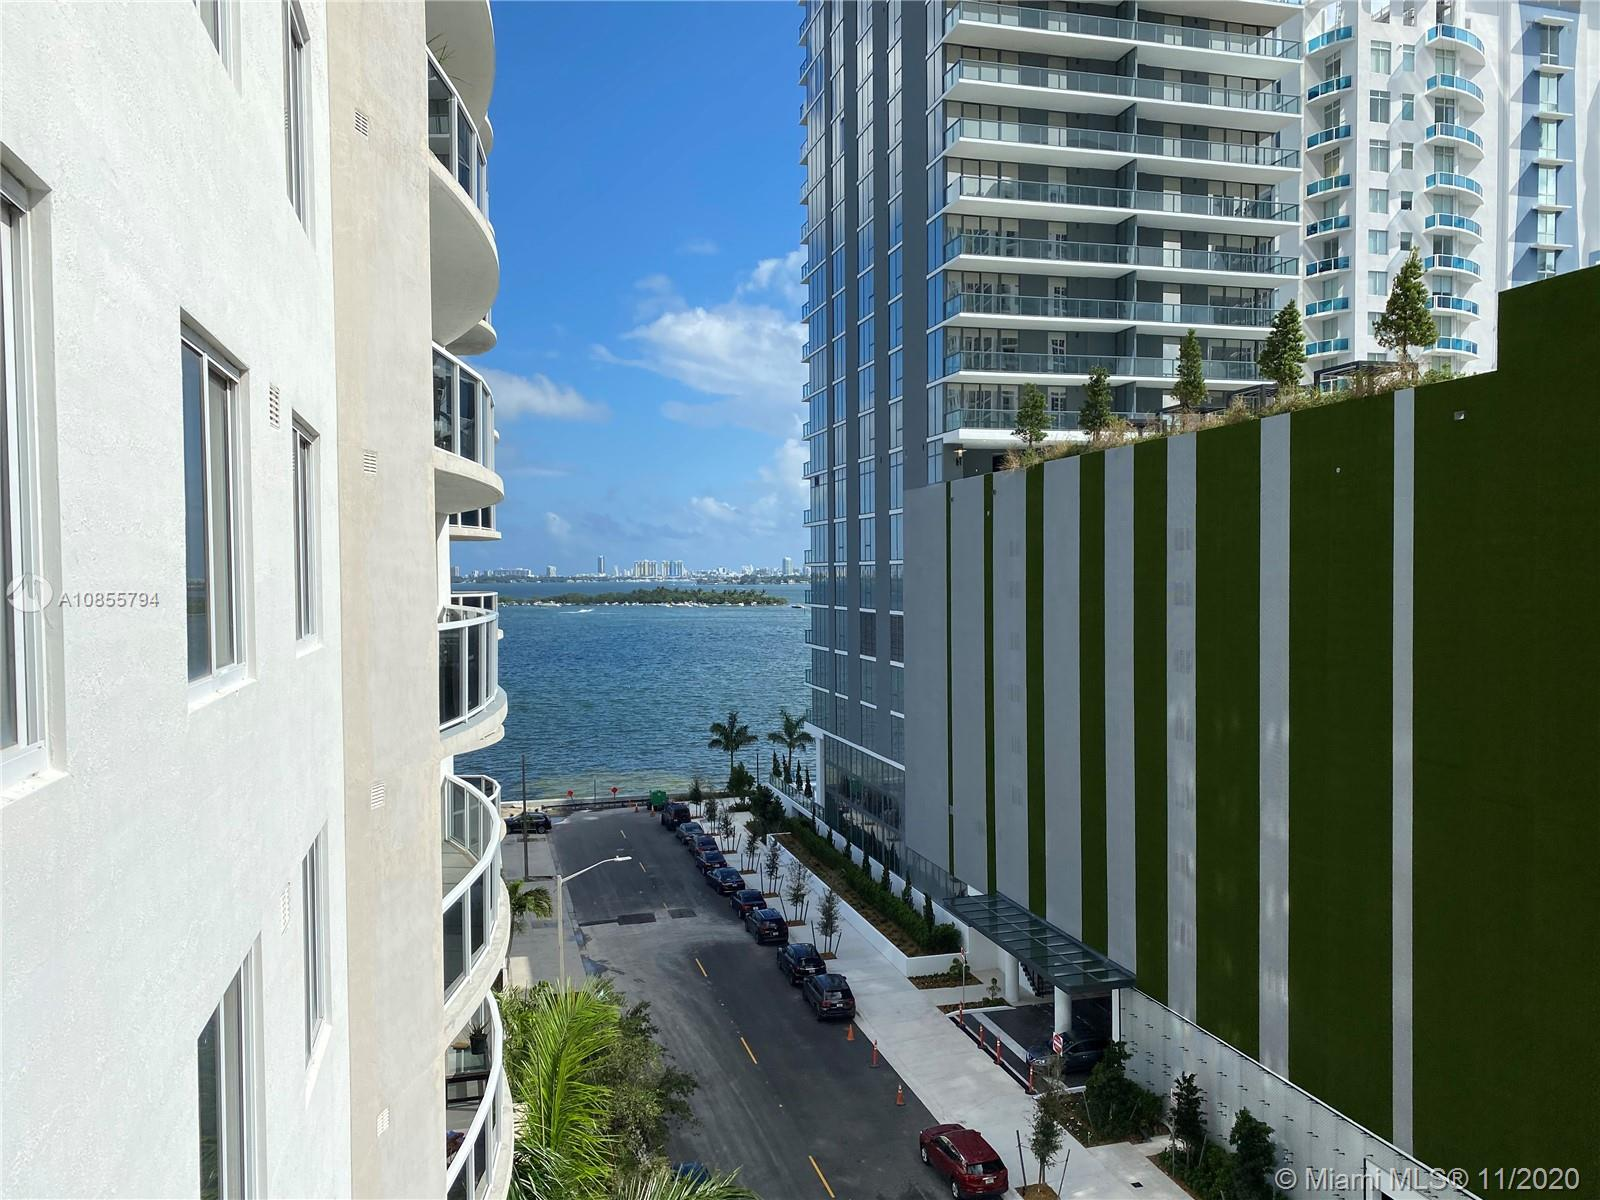 Wonderful furnished 3 bedroom/ 2 bathroom unit in the heart of Edgewater. Unit has an amazing floor plan. Enjoy views of the city and the bay! Building is conveniently located and offers easy access to Wynwood, Design District, Downtown, Brickell, and Miami Beach. Close to highways, Miami International Airport, art centers, museums, fine dining and entertainment. Amenities include a great gym and pool!